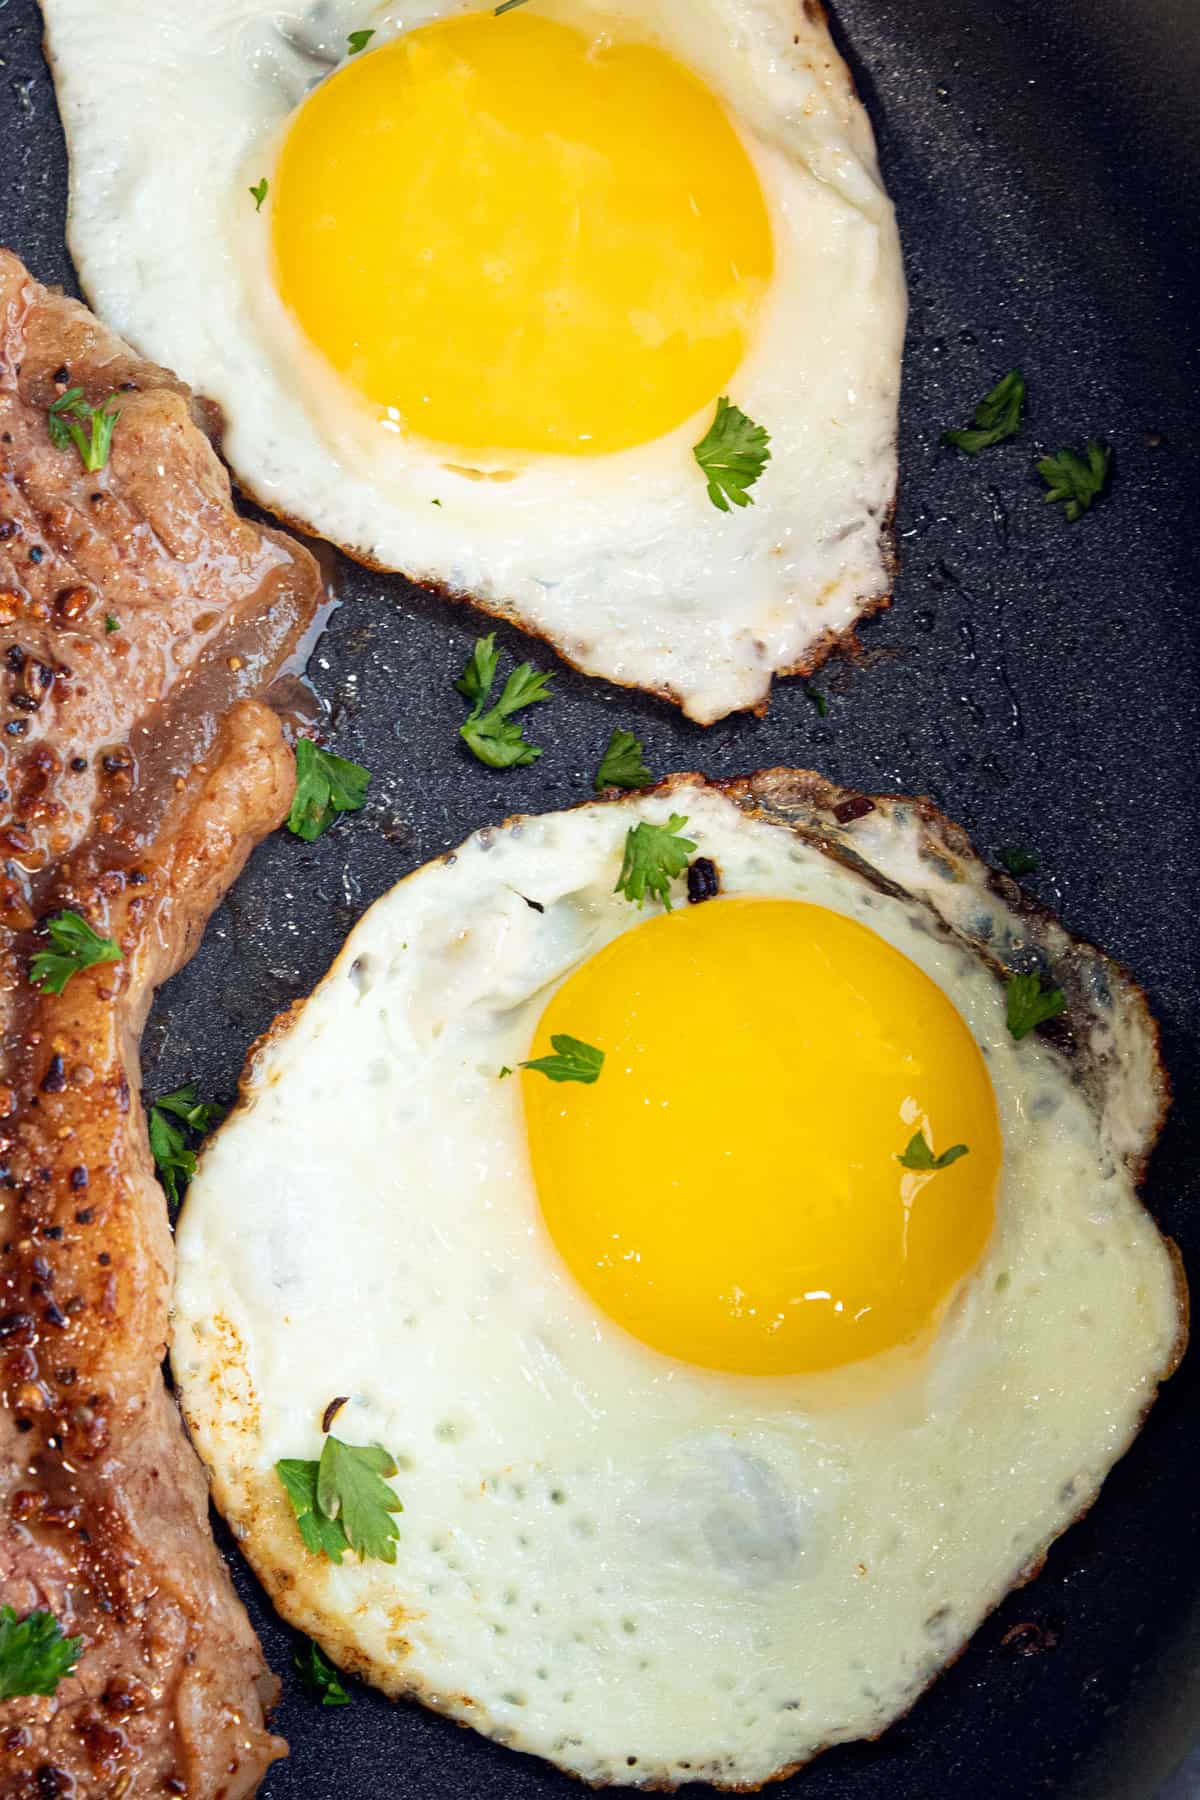 A close-up of two sunny side up fried eggs, next to the edge of a steak on a black plate, dotted with parsley